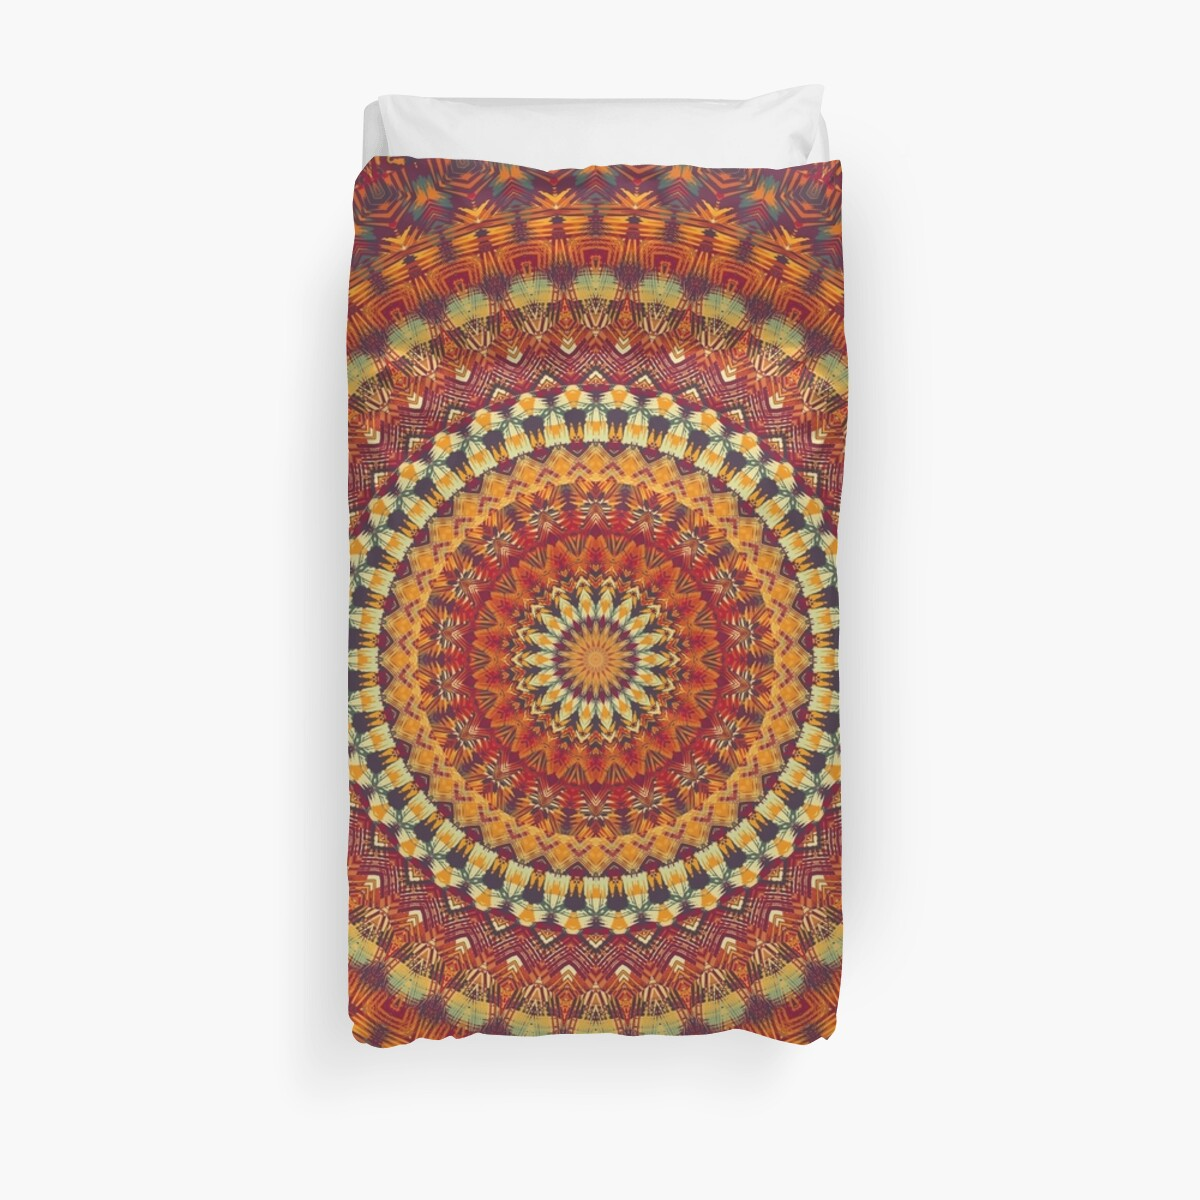 Mandala 70 by PatternsofLife